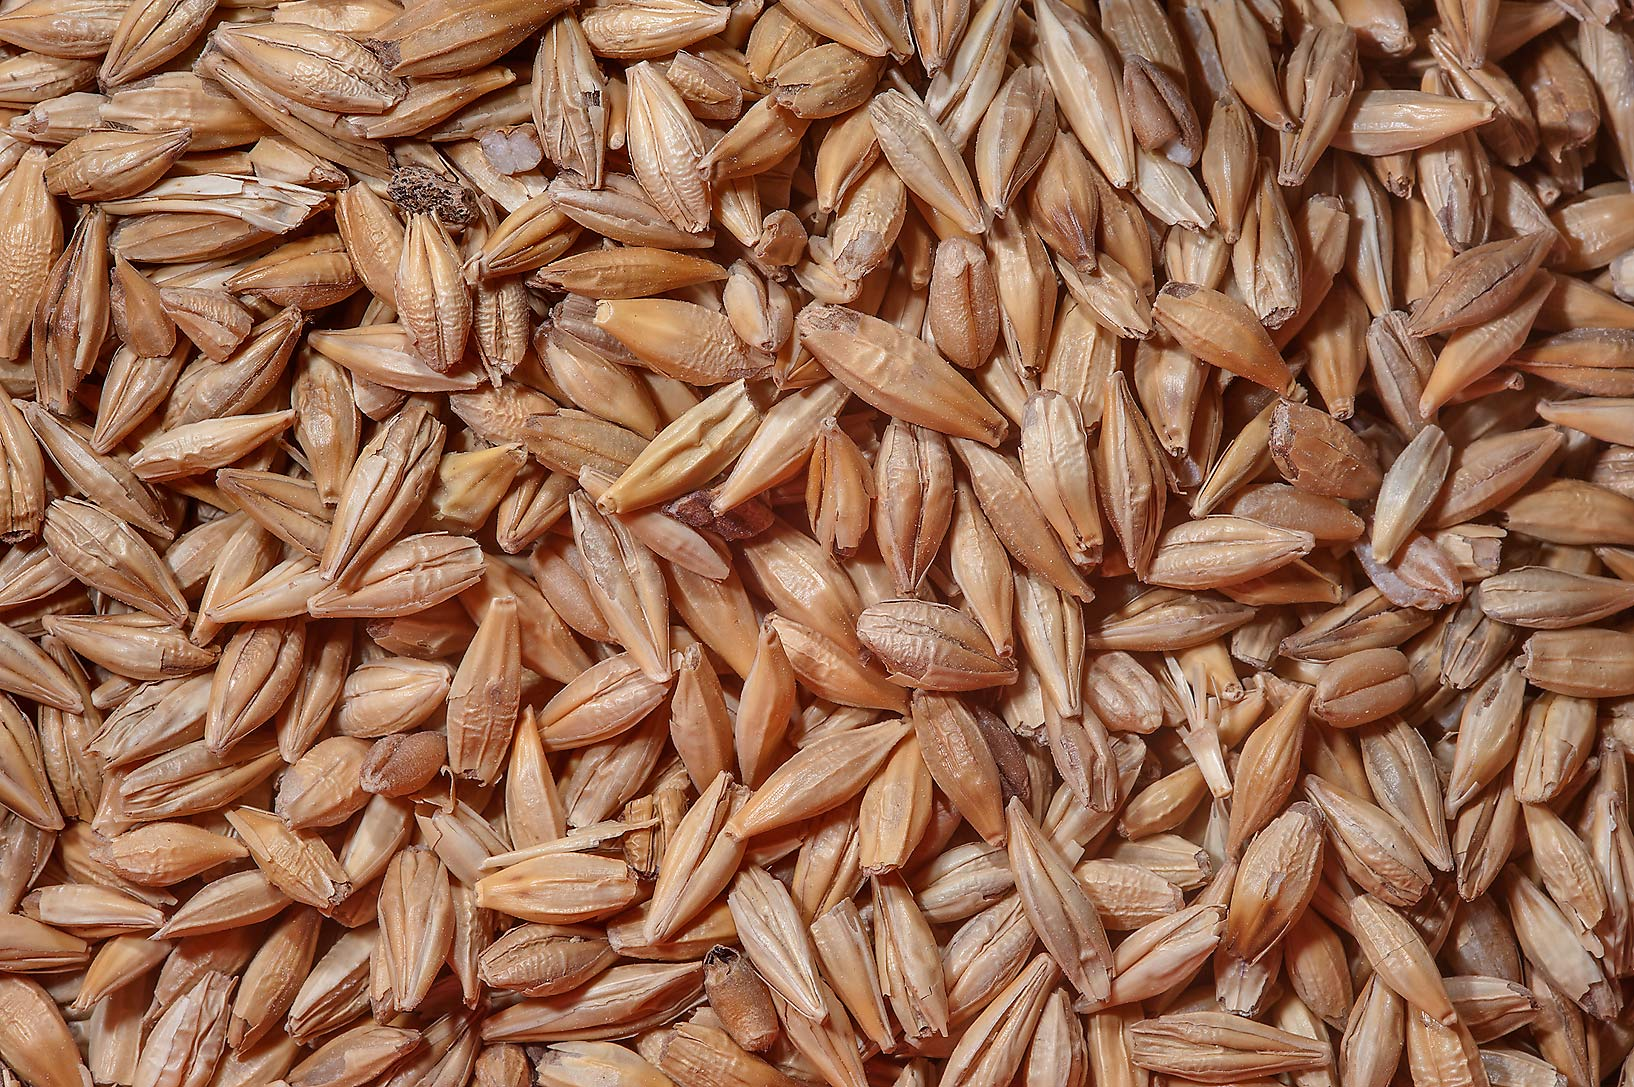 Wheat seeds for sale in spice section of Souq Waqif (Old Market). Doha, Qatar